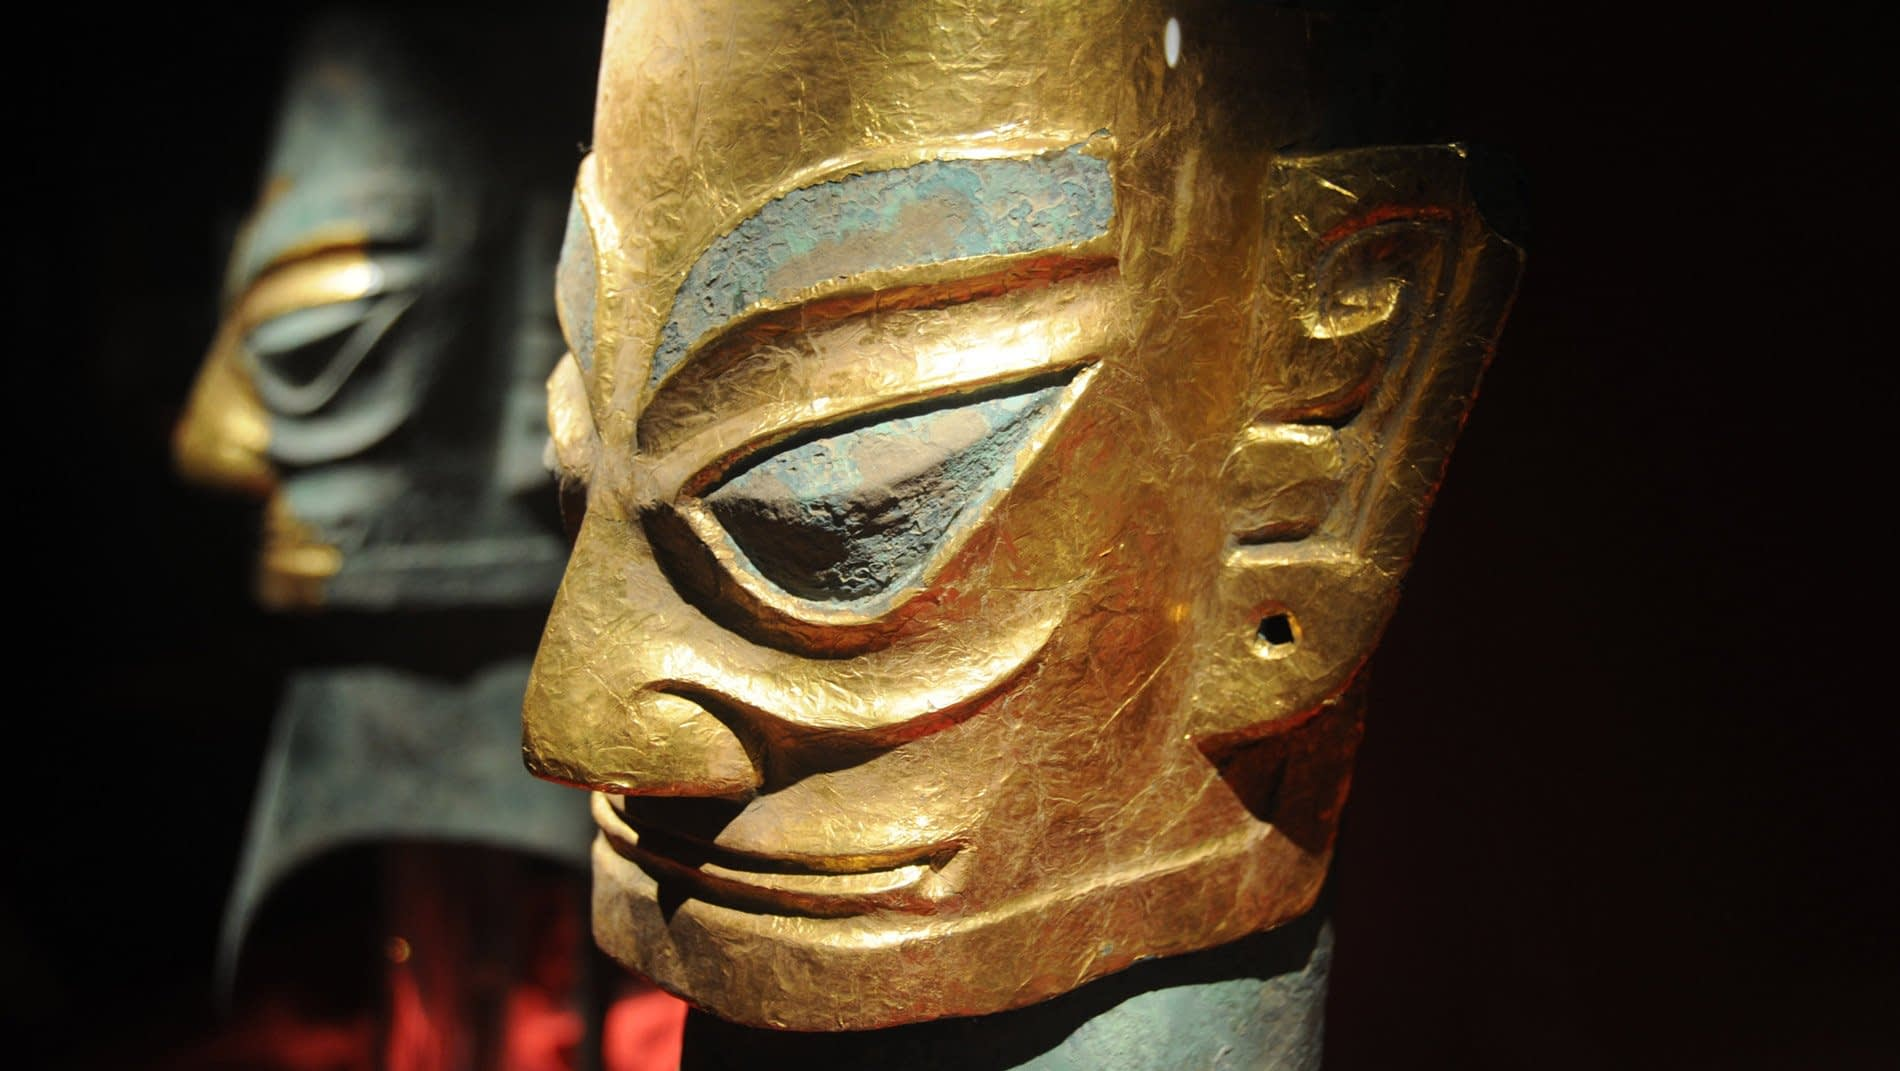 Sanxingdui~Excavated in 1986, the burial pits at Sanxingdui disgorged an amazing treasure trove of golden scepters, gold masks from the size of your pinky to the width of a table and 20 feet tall bronze trees of life; all about three thousand years old.